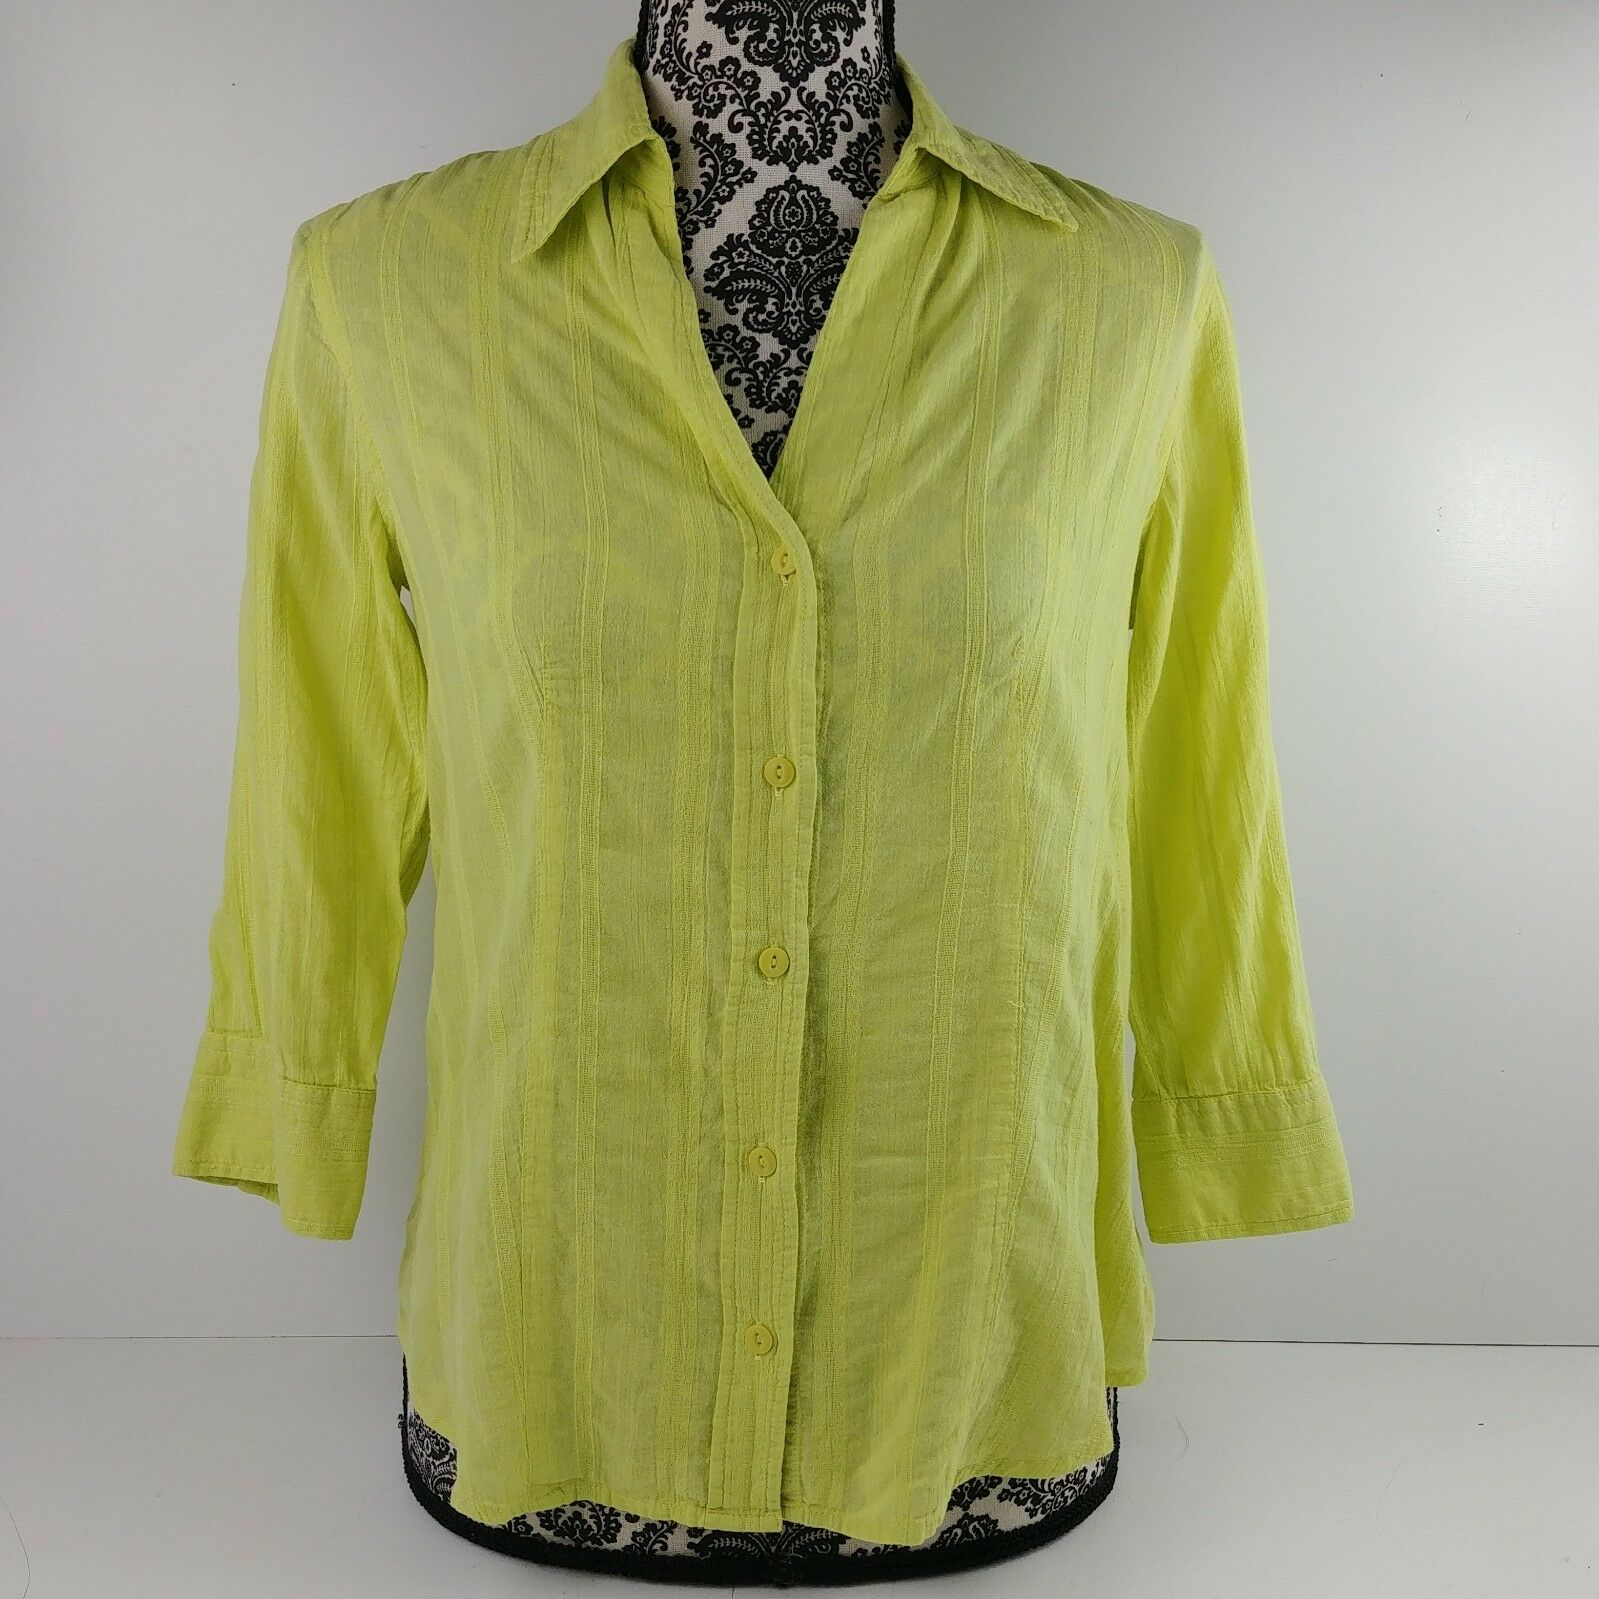 4680a601605076 i.e. Relaxed Womens Lime Green Button Down Blouse 3/4 Sleeve ...